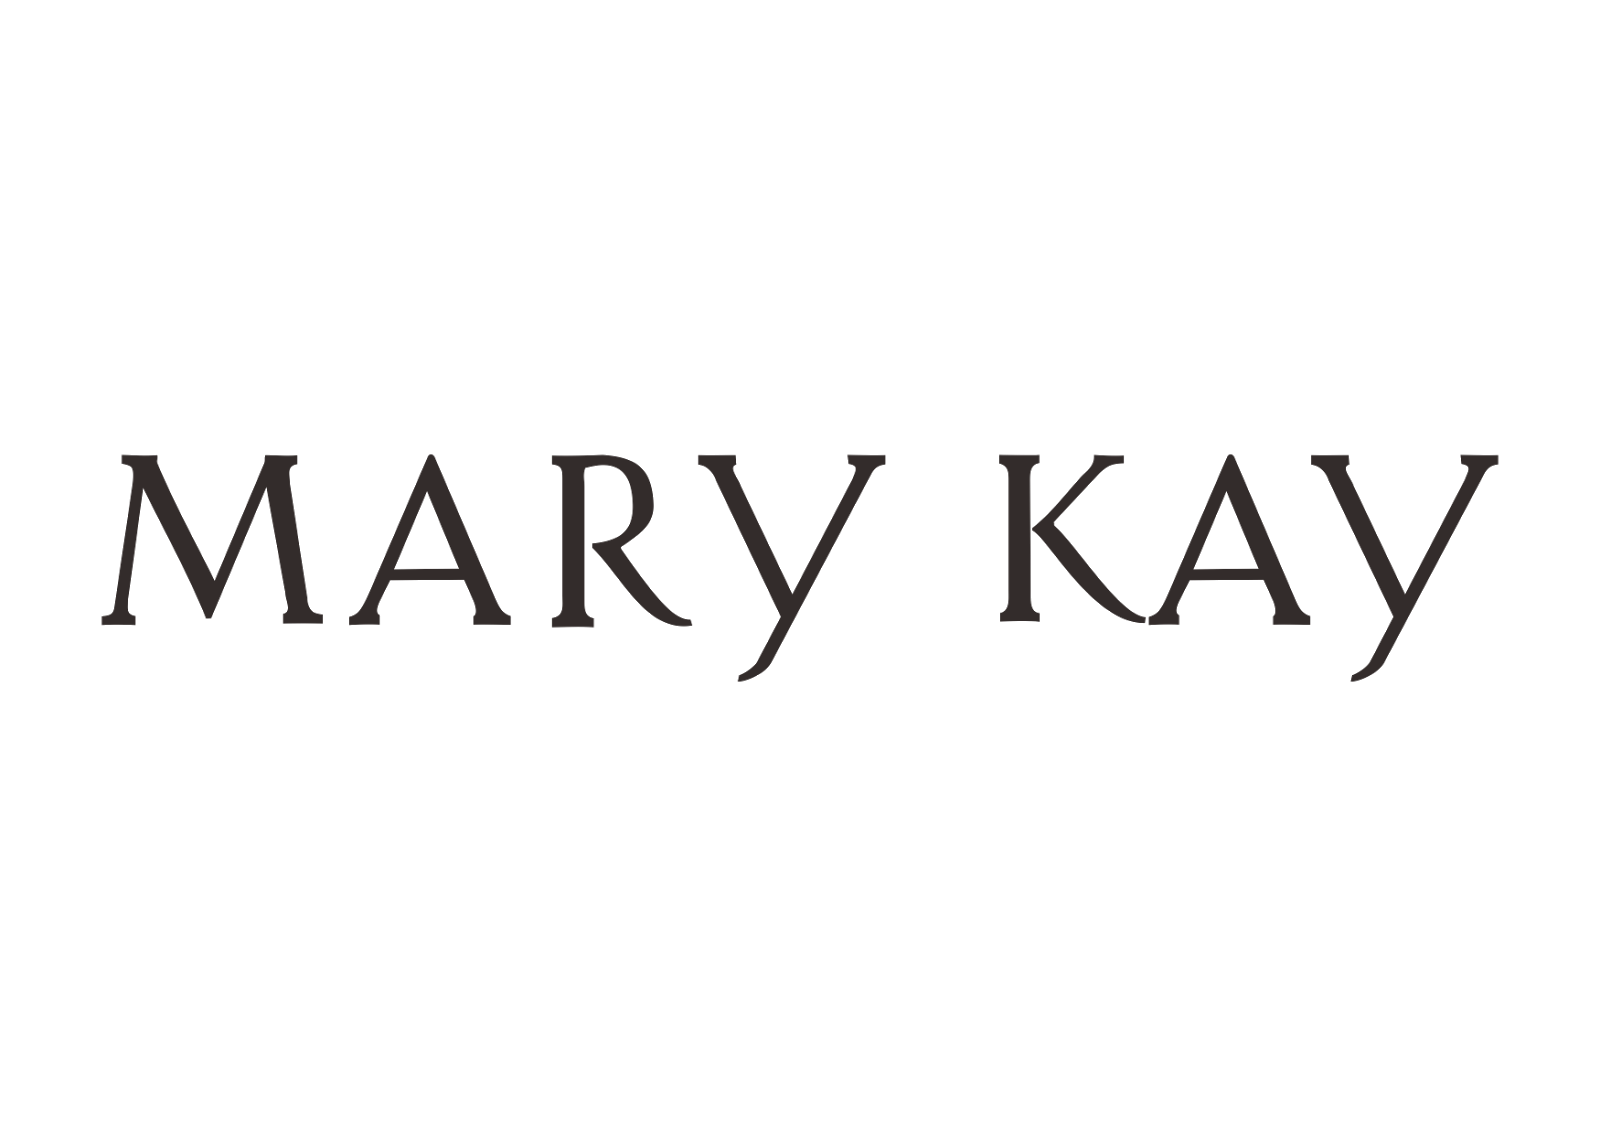 Mary Kay Coupon Codes, Promos & Sales